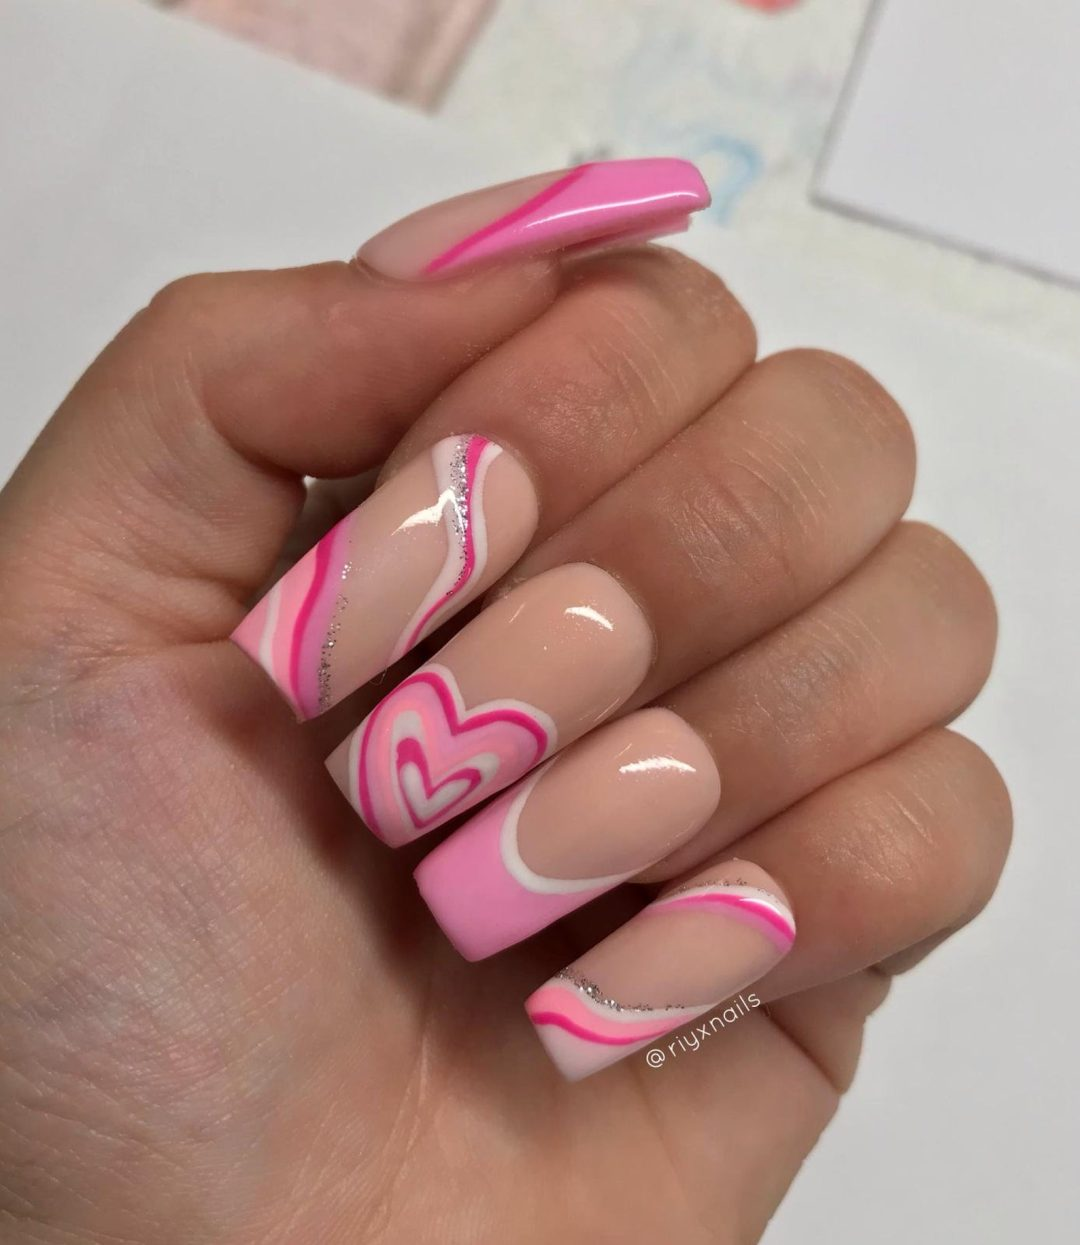 Swirly pink hearts on nude nails